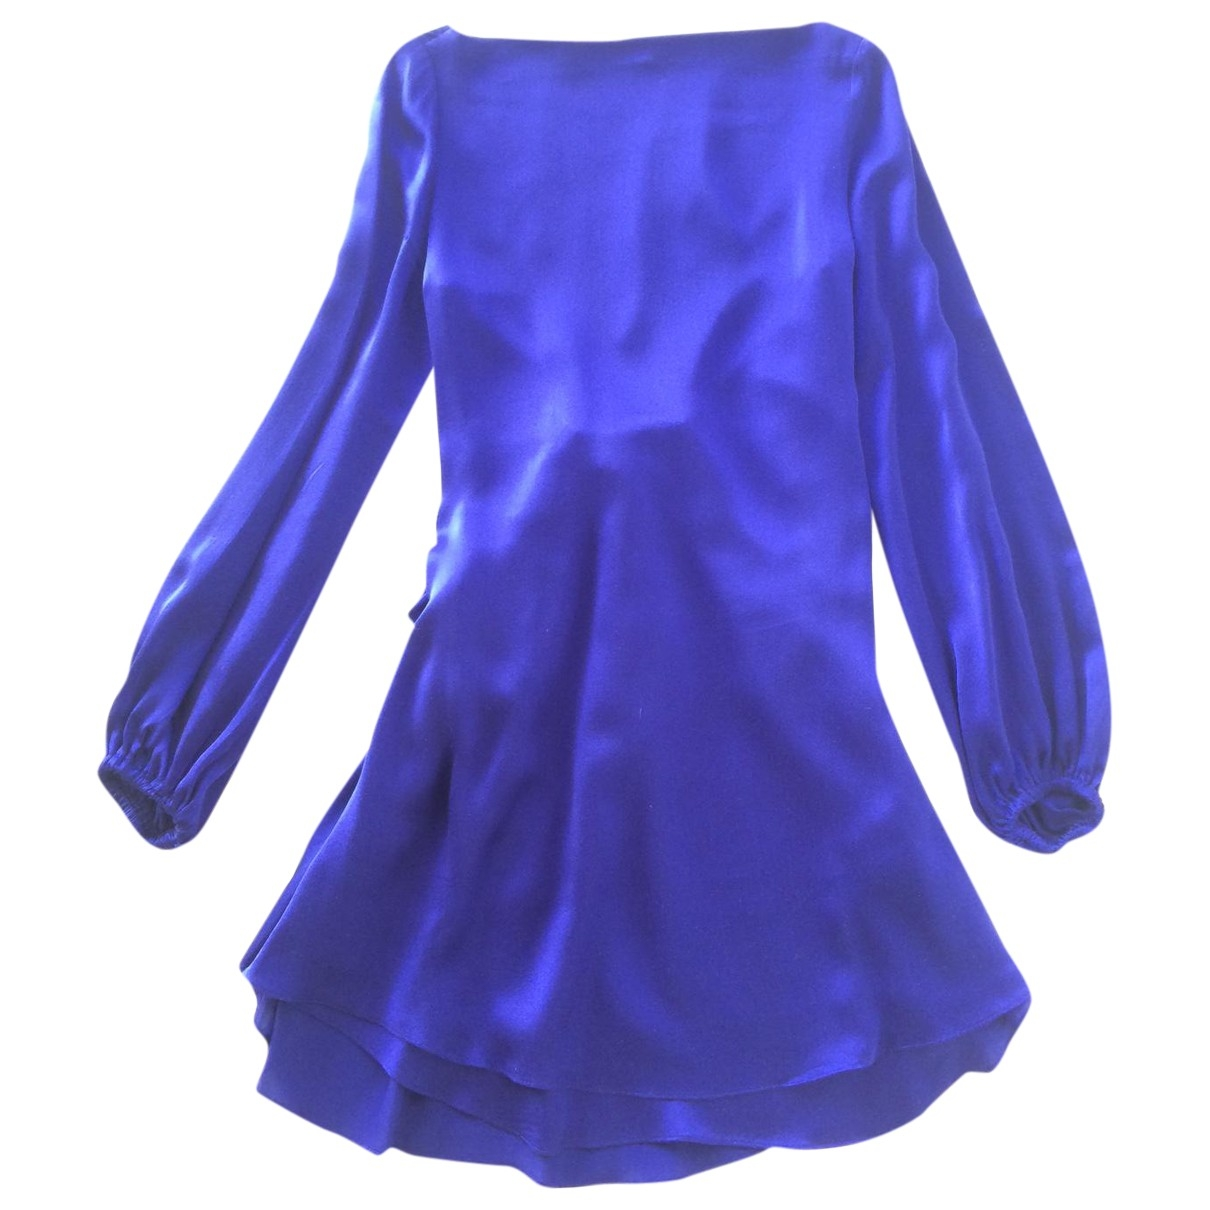 Hoss Intropia \N Blue Silk dress for Women 36 FR